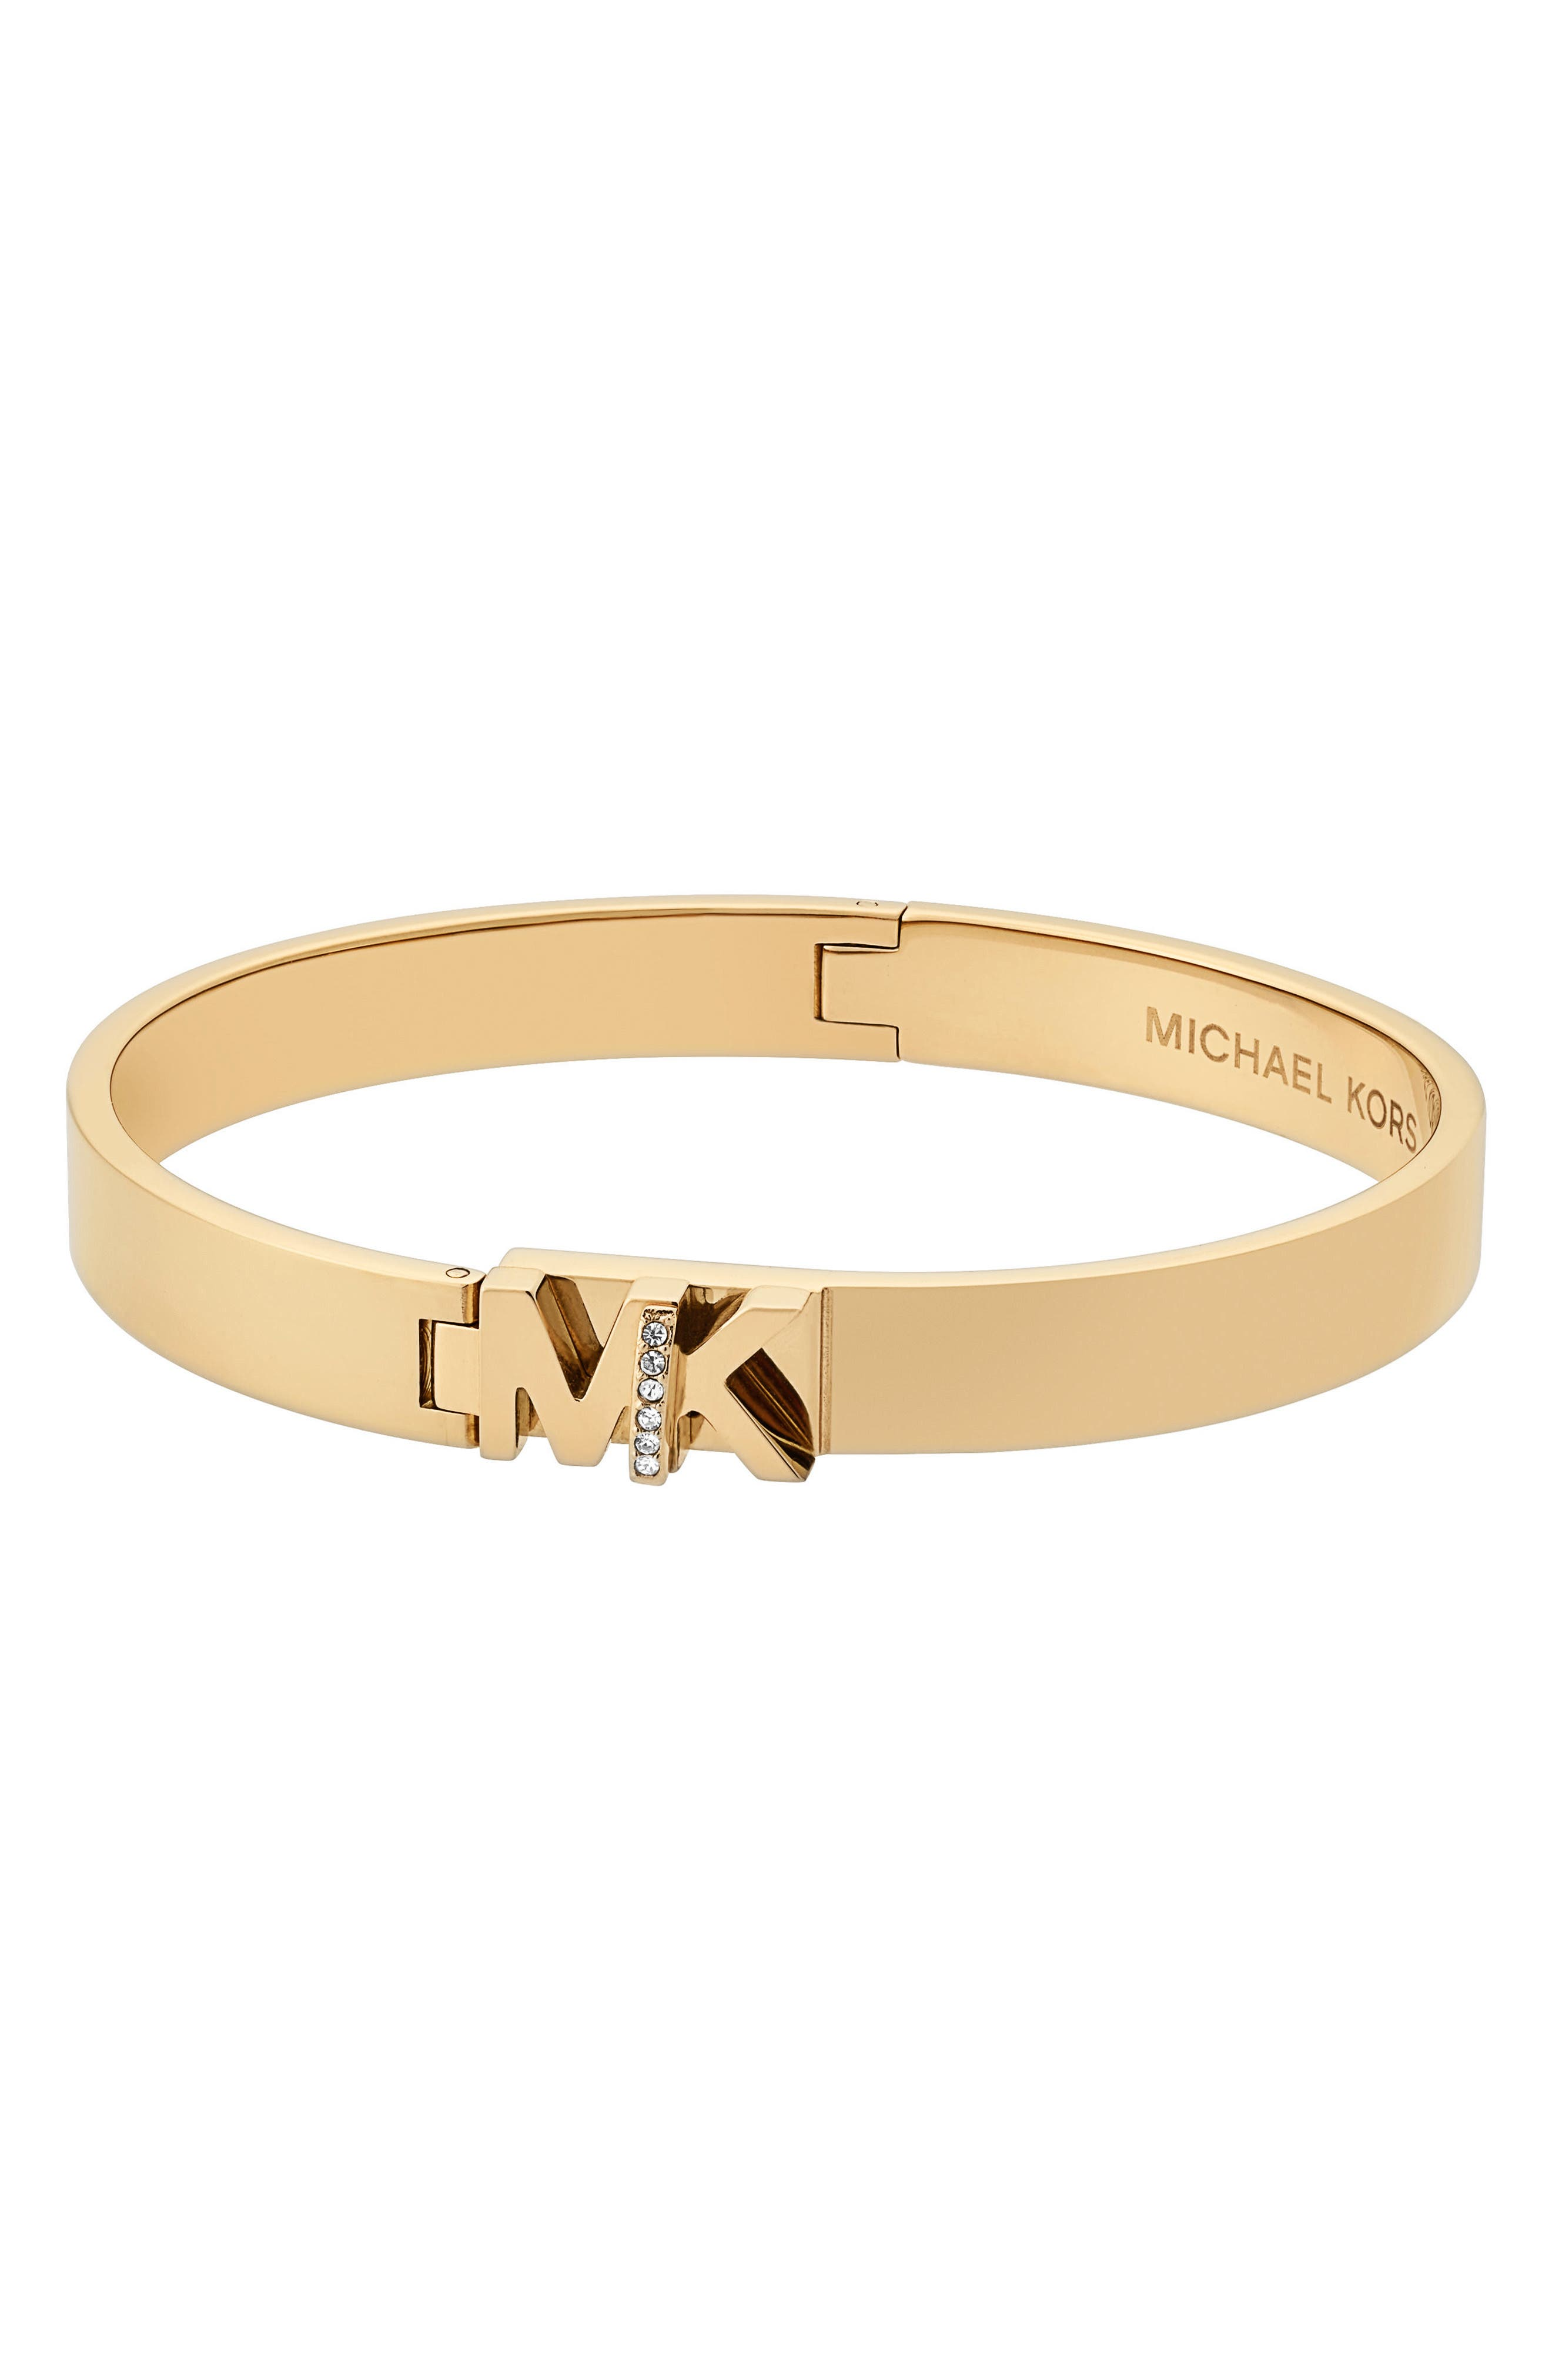 Turnlock Bangle,                         Main,                         color, Gold